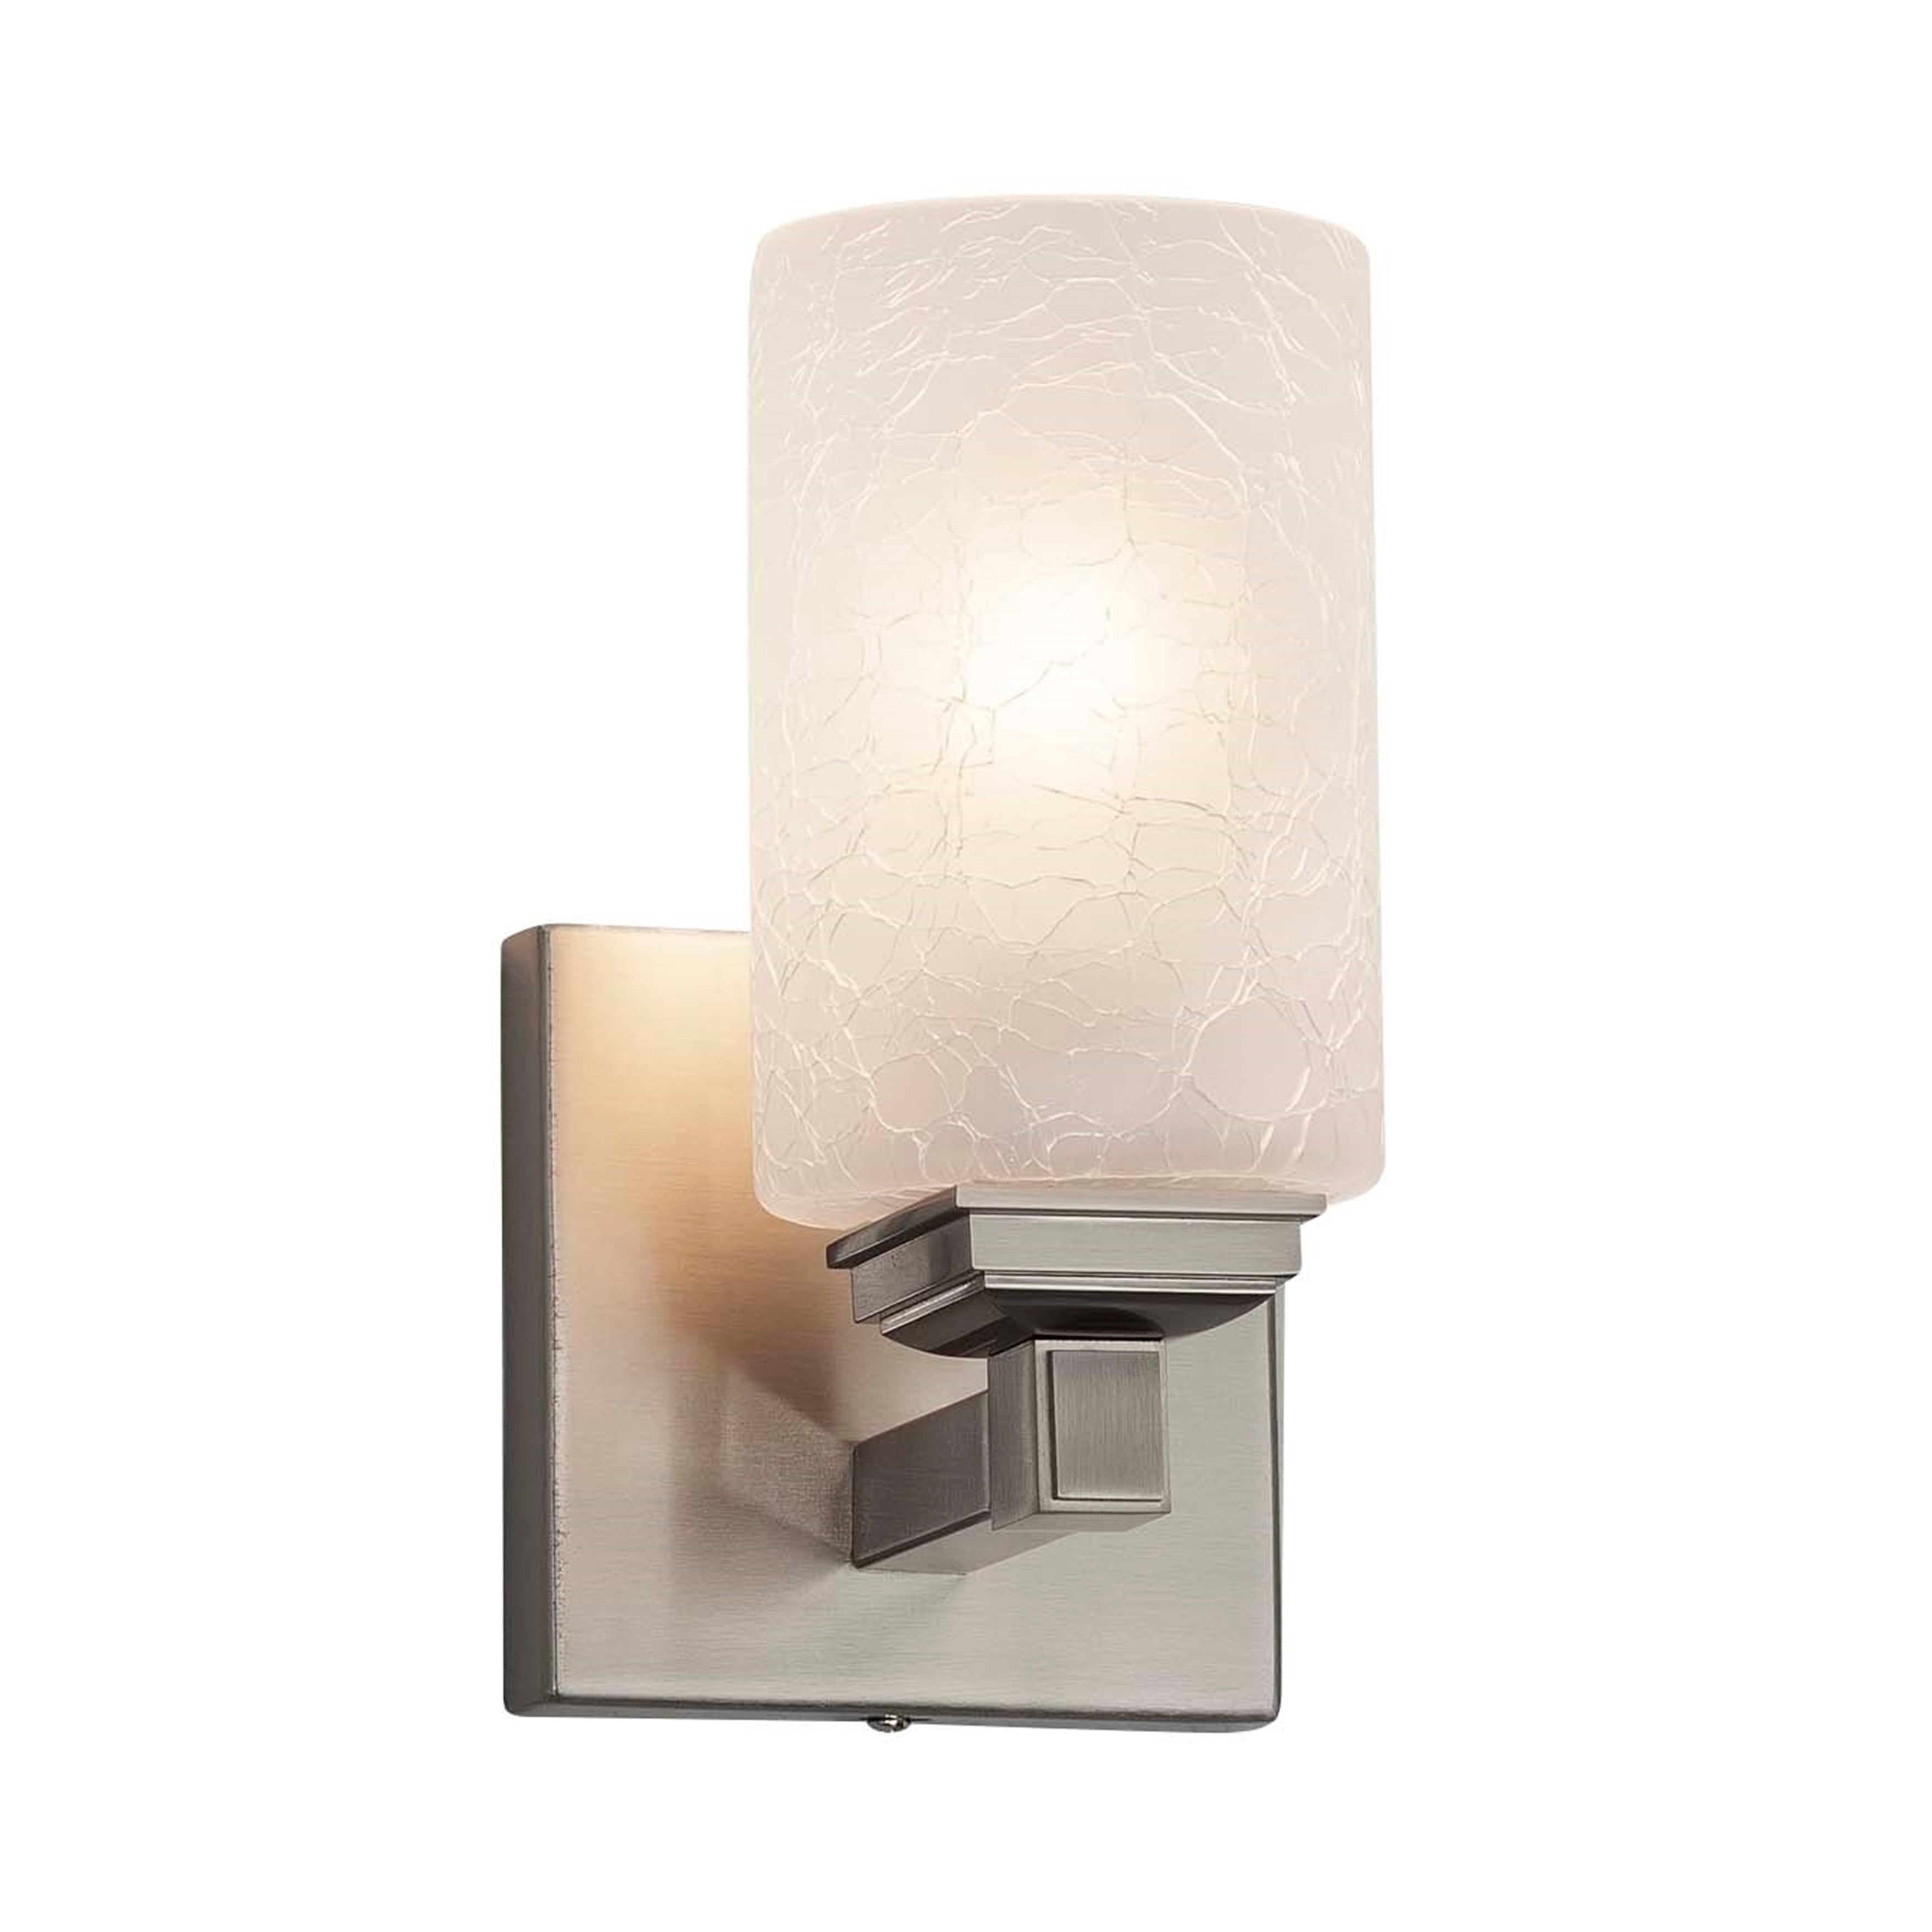 Justice design group fusion regency 1 light brushed nickel wall sconce frosted crackle cylinder w flat rim shade